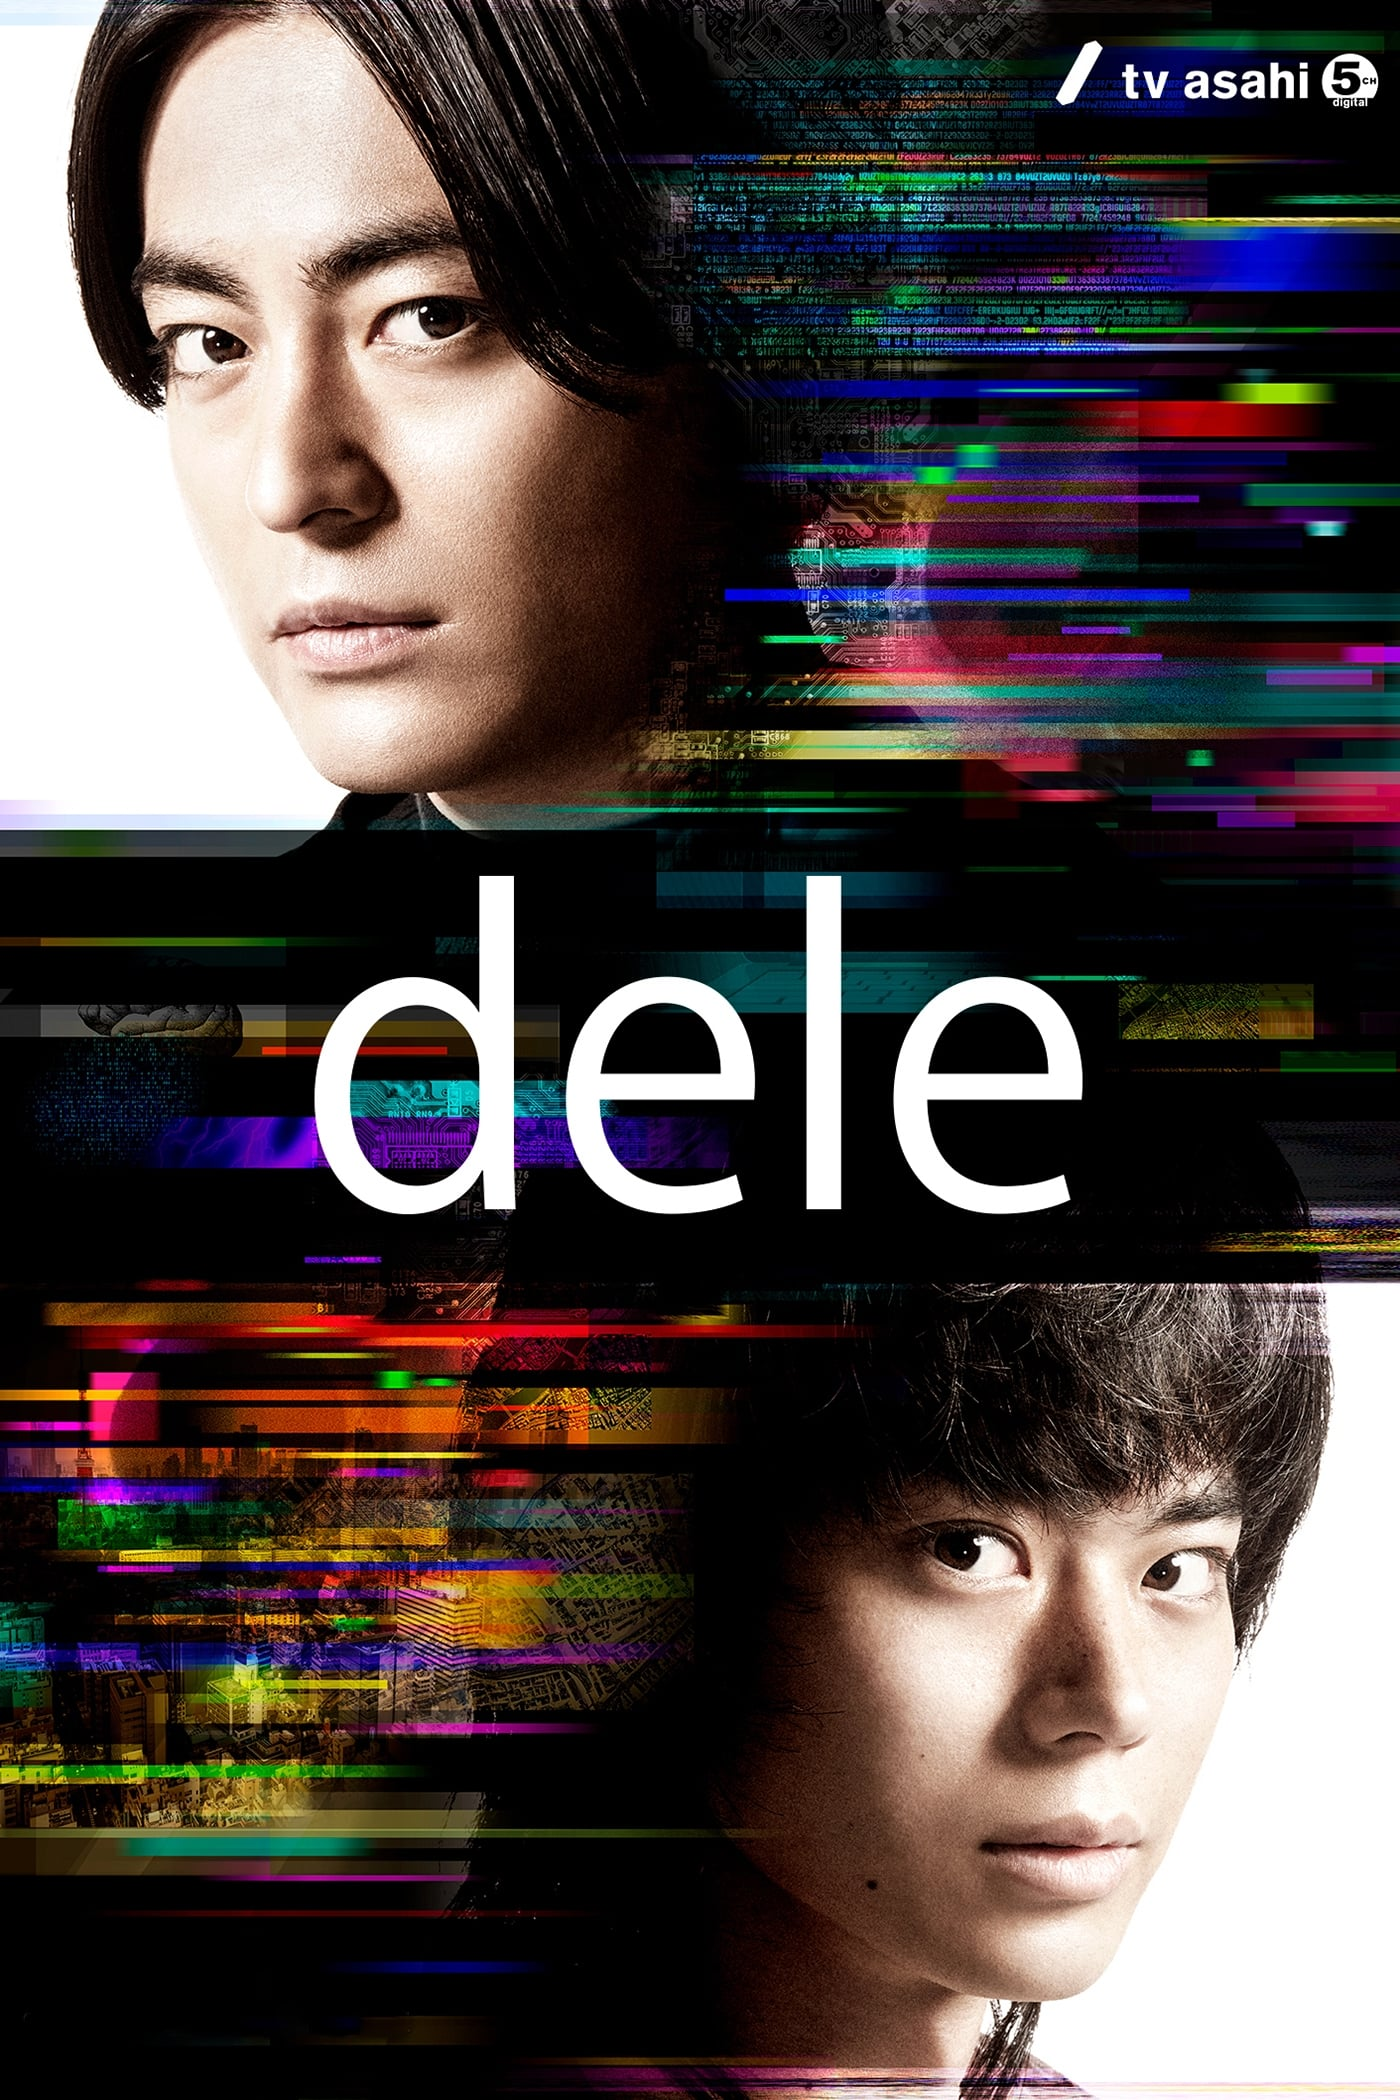 image for dele